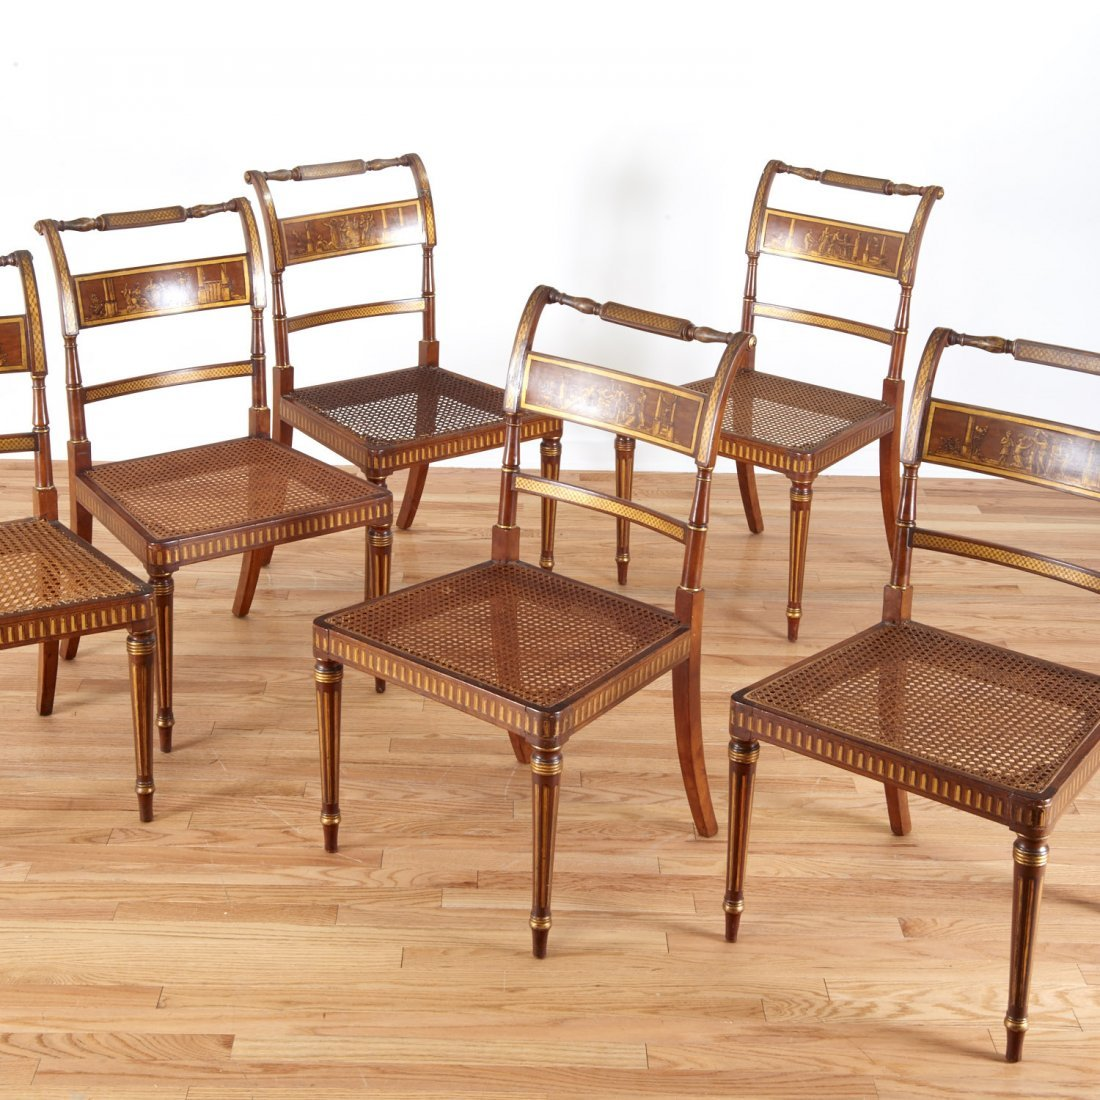 Fine set (6) American Federal gilt dining chairs